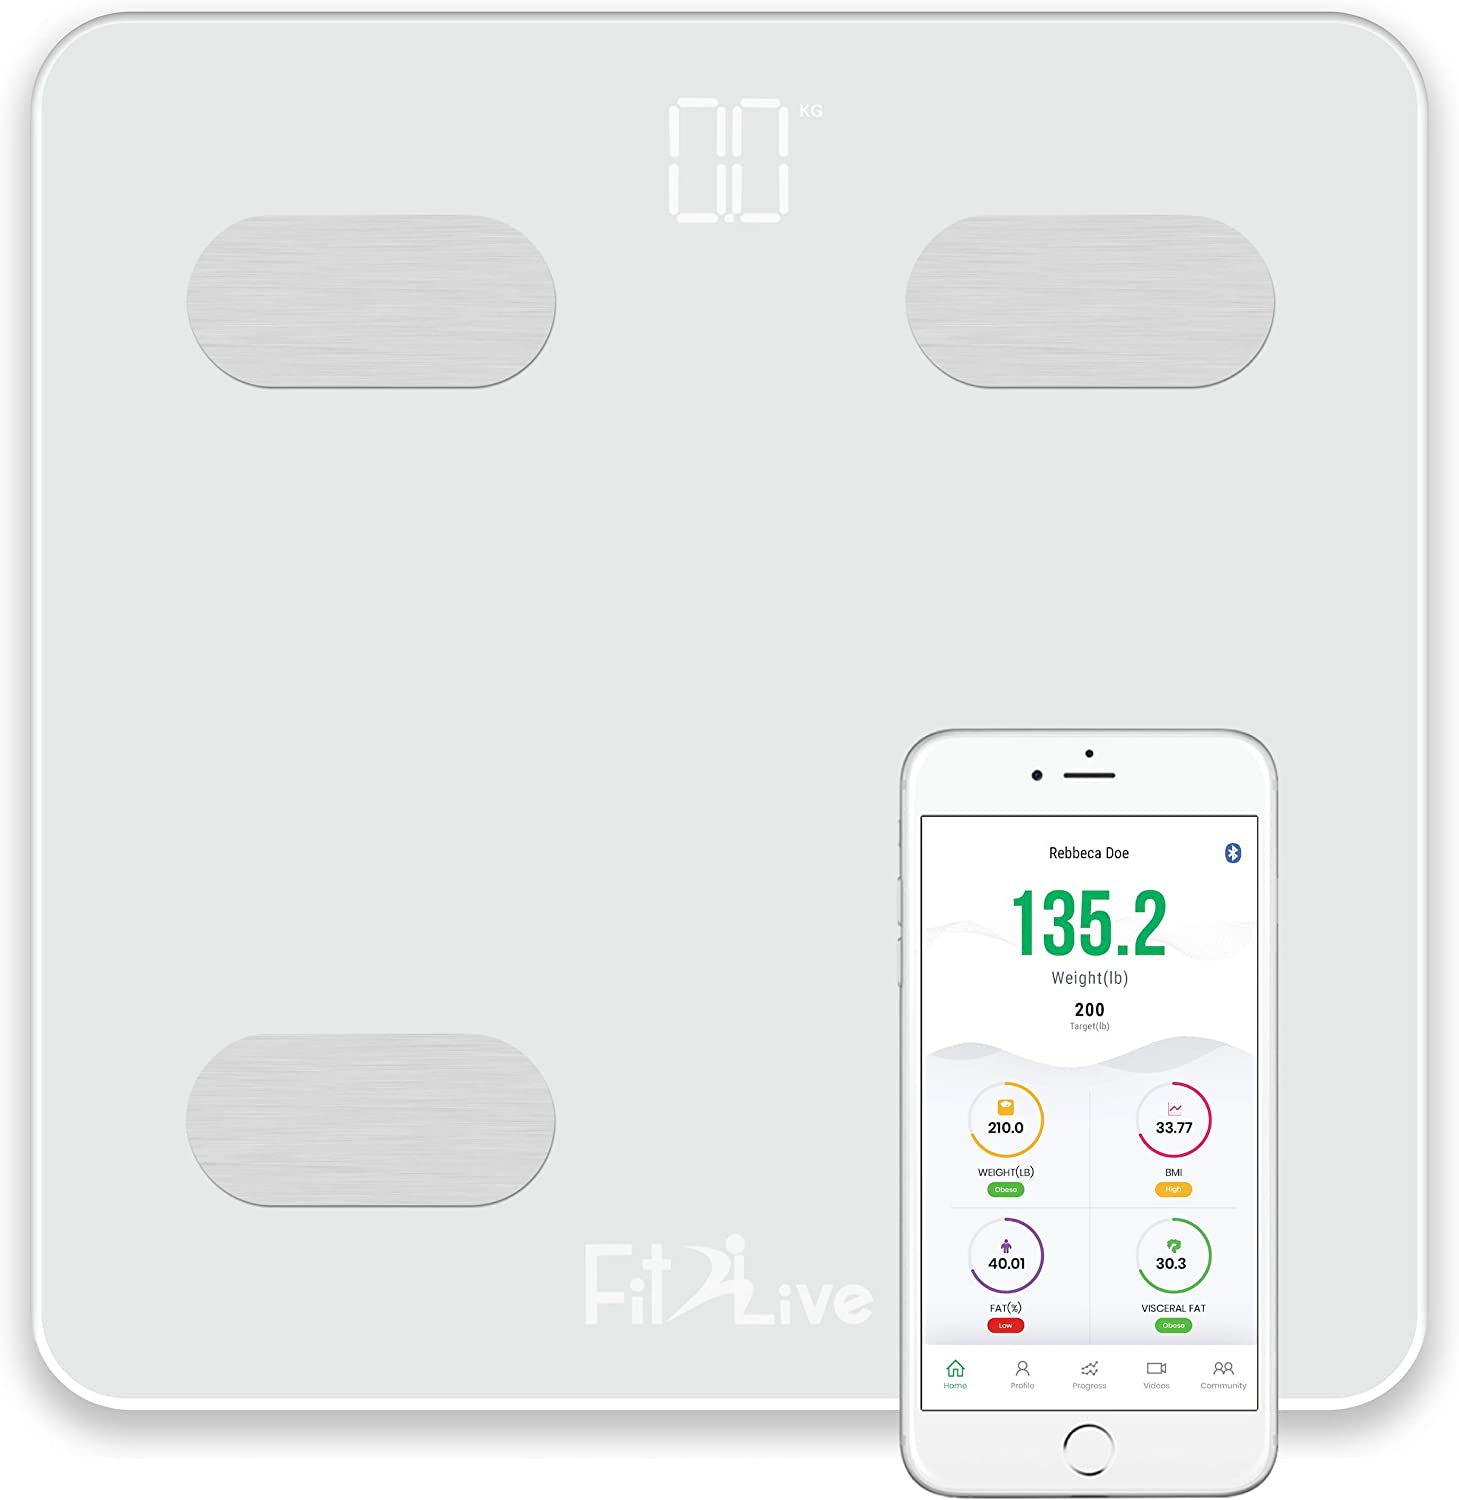 Bluetooth Smart Body Fat Scale- Fit2Live Digital Bathroom Weight Scale, Body Composition Analyzer, USB Rechargeable, with iOS and Android App for Body Weight, Fat, Water, BMI, BMR, Muscle Mass White